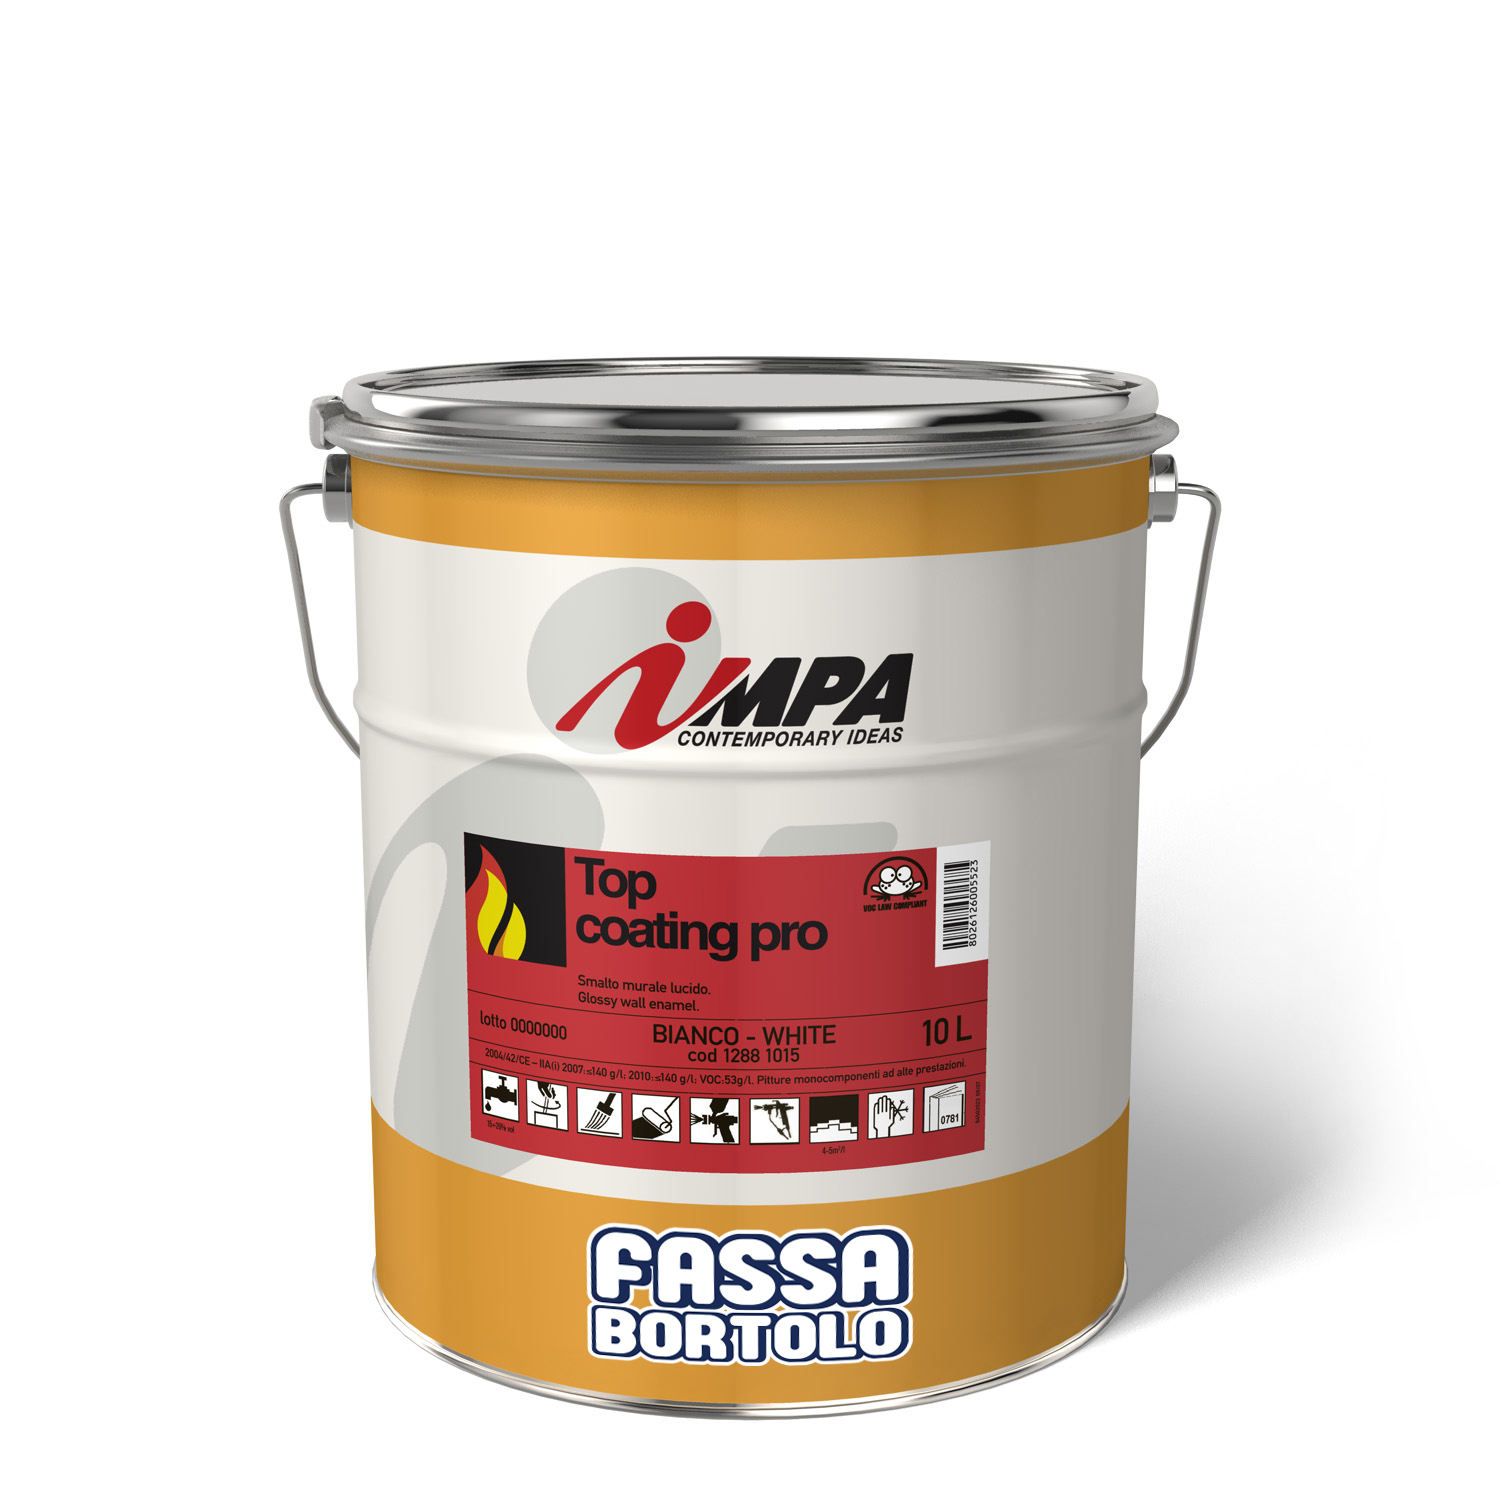 TOP COATING PRO: Finitura protettiva speciale per Barrier